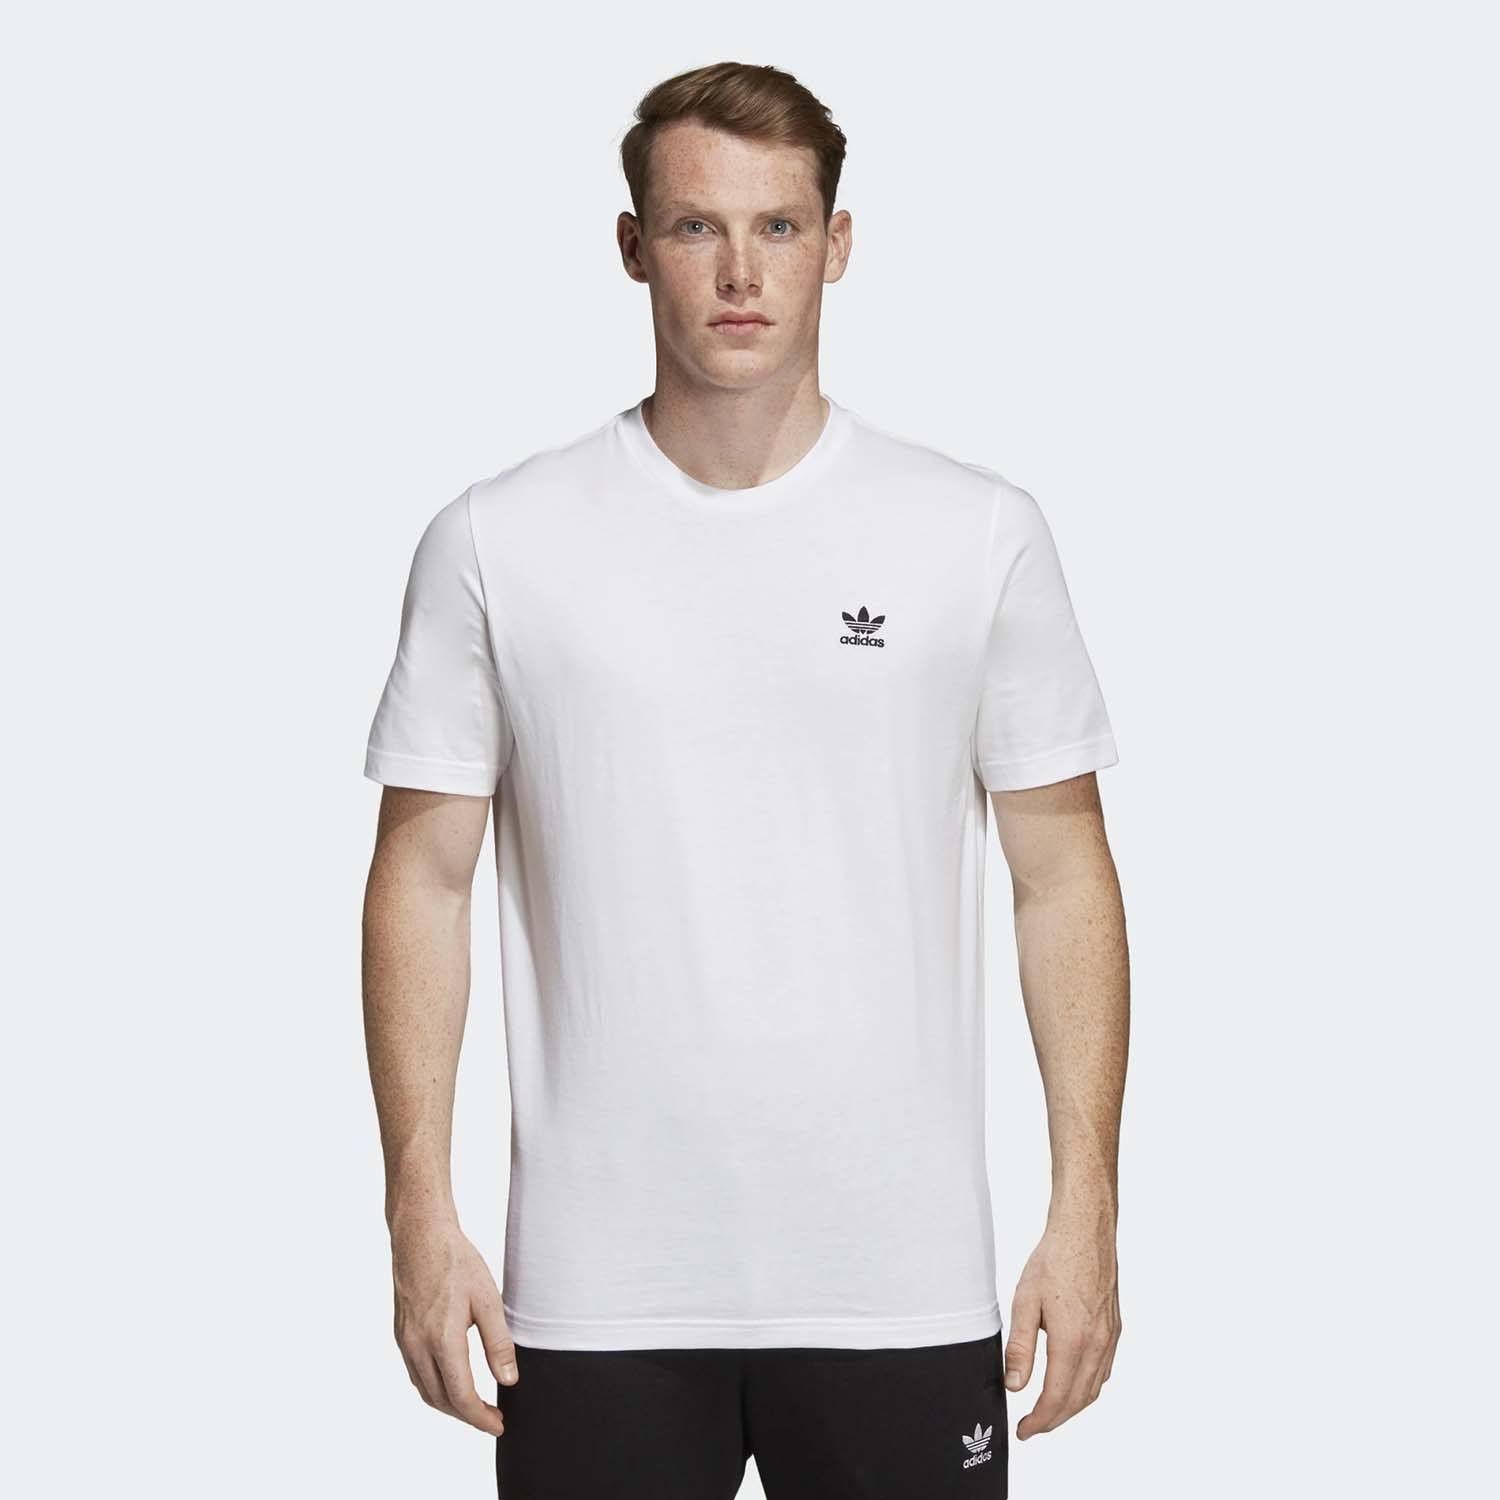 DV1576 Adidas Originals Essential Tee Running Gym Casual Cotton T-Shirt Top